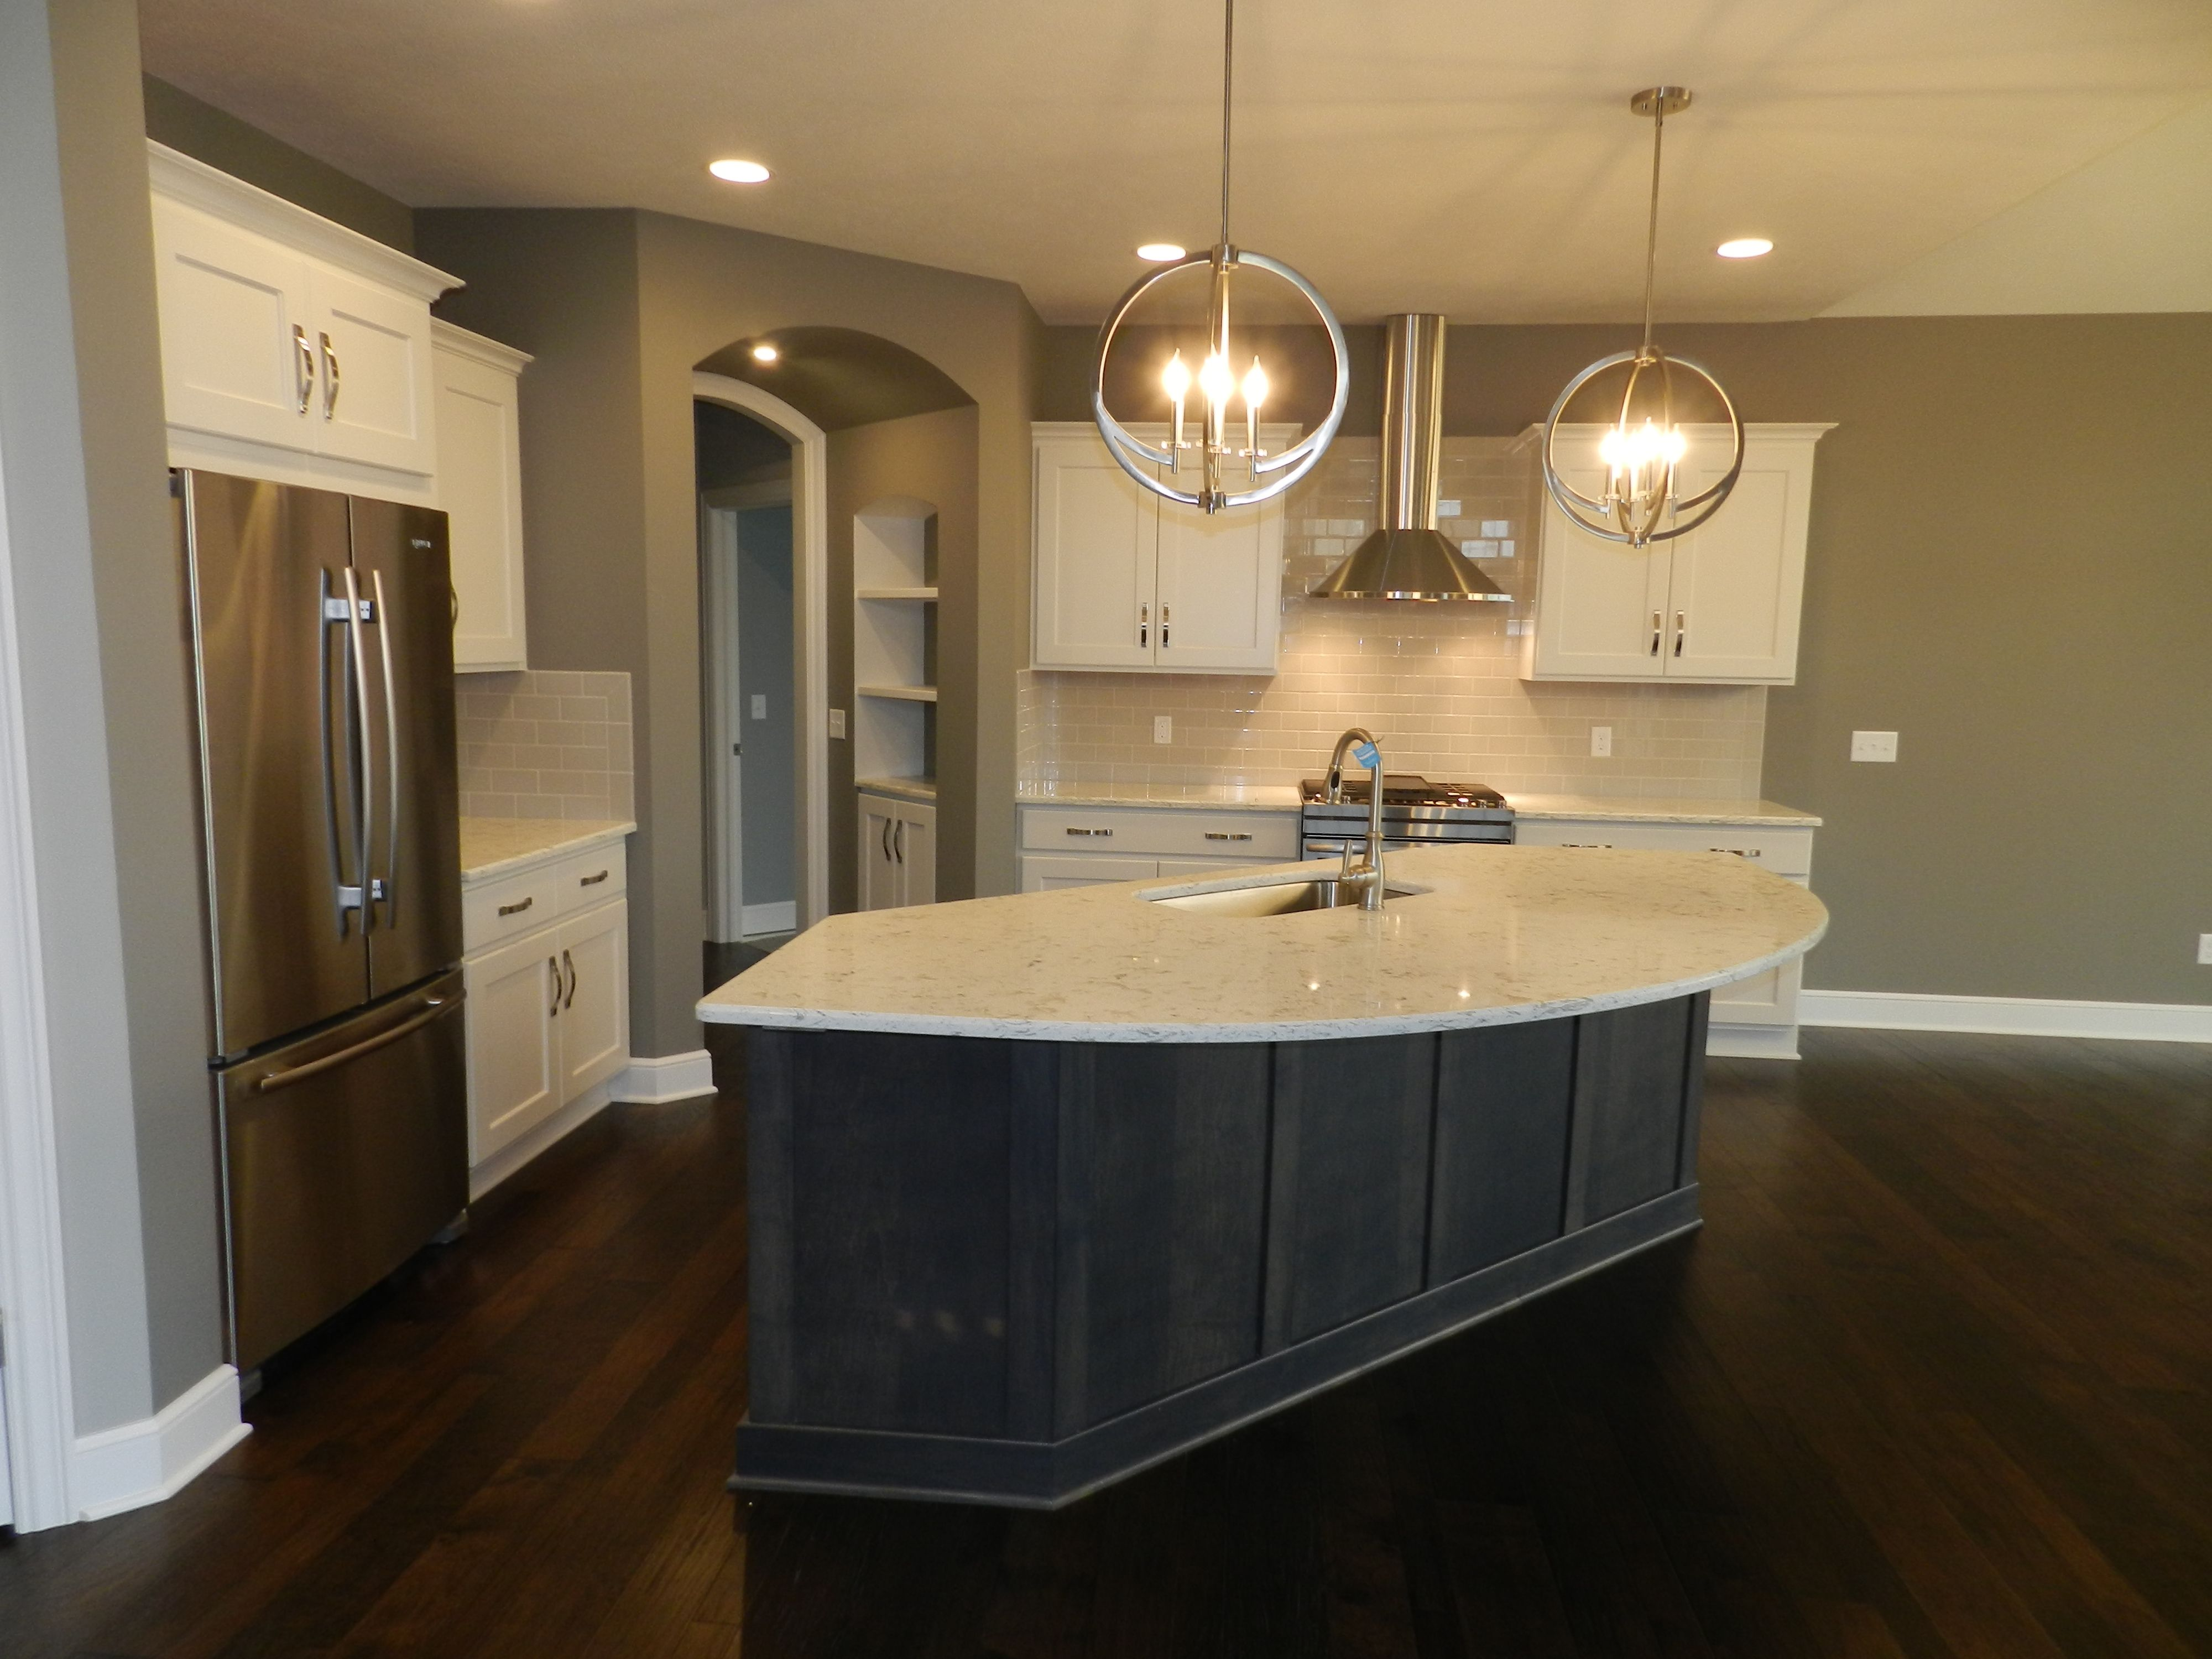 Kitchen featured in the Brighton C2 By Classic Homes in Akron, OH